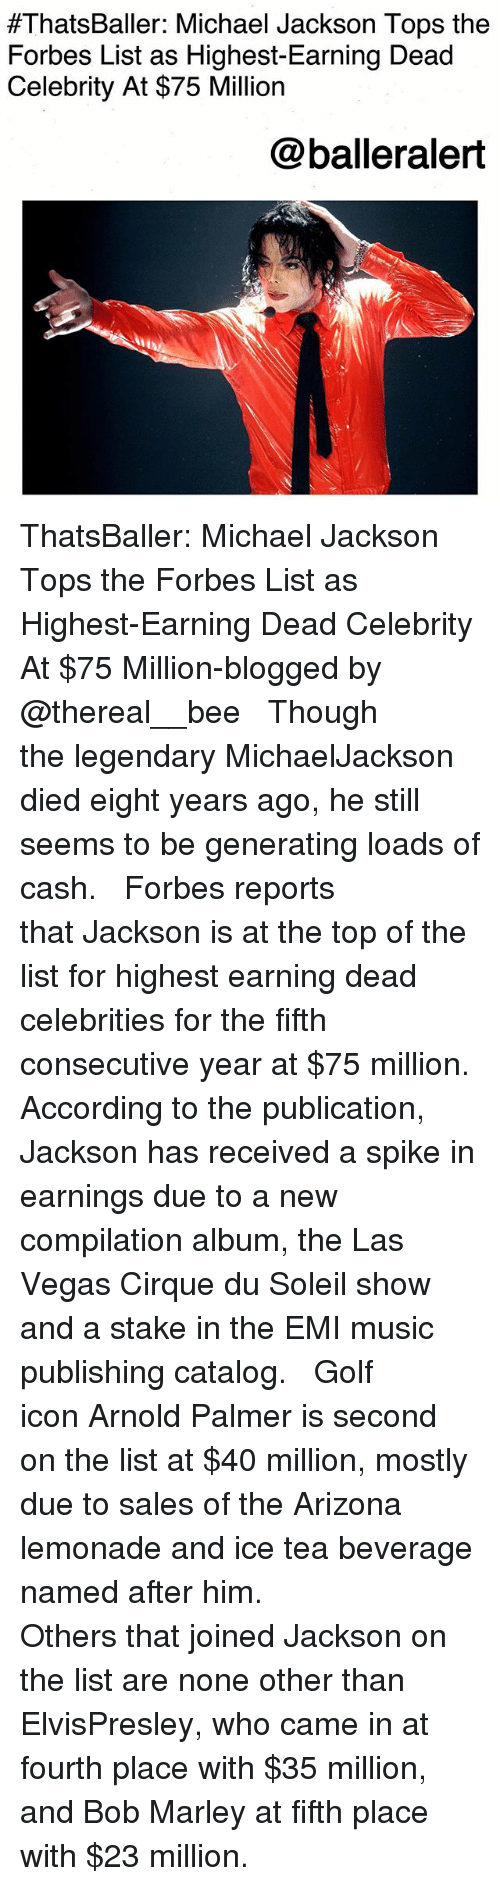 dead celebrities:  #ThatsBaller: Michael Jackson Tops the  Forbes List as Highest-Earning Dead  Celebrity At $75 Million  @balleralert ThatsBaller: Michael Jackson Tops the Forbes List as Highest-Earning Dead Celebrity At $75 Million-blogged by @thereal__bee ⠀⠀⠀⠀⠀⠀⠀⠀⠀ ⠀⠀ Though the legendary MichaelJackson died eight years ago, he still seems to be generating loads of cash. ⠀⠀⠀⠀⠀⠀⠀⠀⠀ ⠀⠀ Forbes reports that Jackson is at the top of the list for highest earning dead celebrities for the fifth consecutive year at $75 million. According to the publication, Jackson has received a spike in earnings due to a new compilation album, the Las Vegas Cirque du Soleil show and a stake in the EMI music publishing catalog. ⠀⠀⠀⠀⠀⠀⠀⠀⠀ ⠀⠀ Golf icon Arnold Palmer is second on the list at $40 million, mostly due to sales of the Arizona lemonade and ice tea beverage named after him. ⠀⠀⠀⠀⠀⠀⠀⠀⠀ ⠀⠀ Others that joined Jackson on the list are none other than ElvisPresley, who came in at fourth place with $35 million, and Bob Marley at fifth place with $23 million.